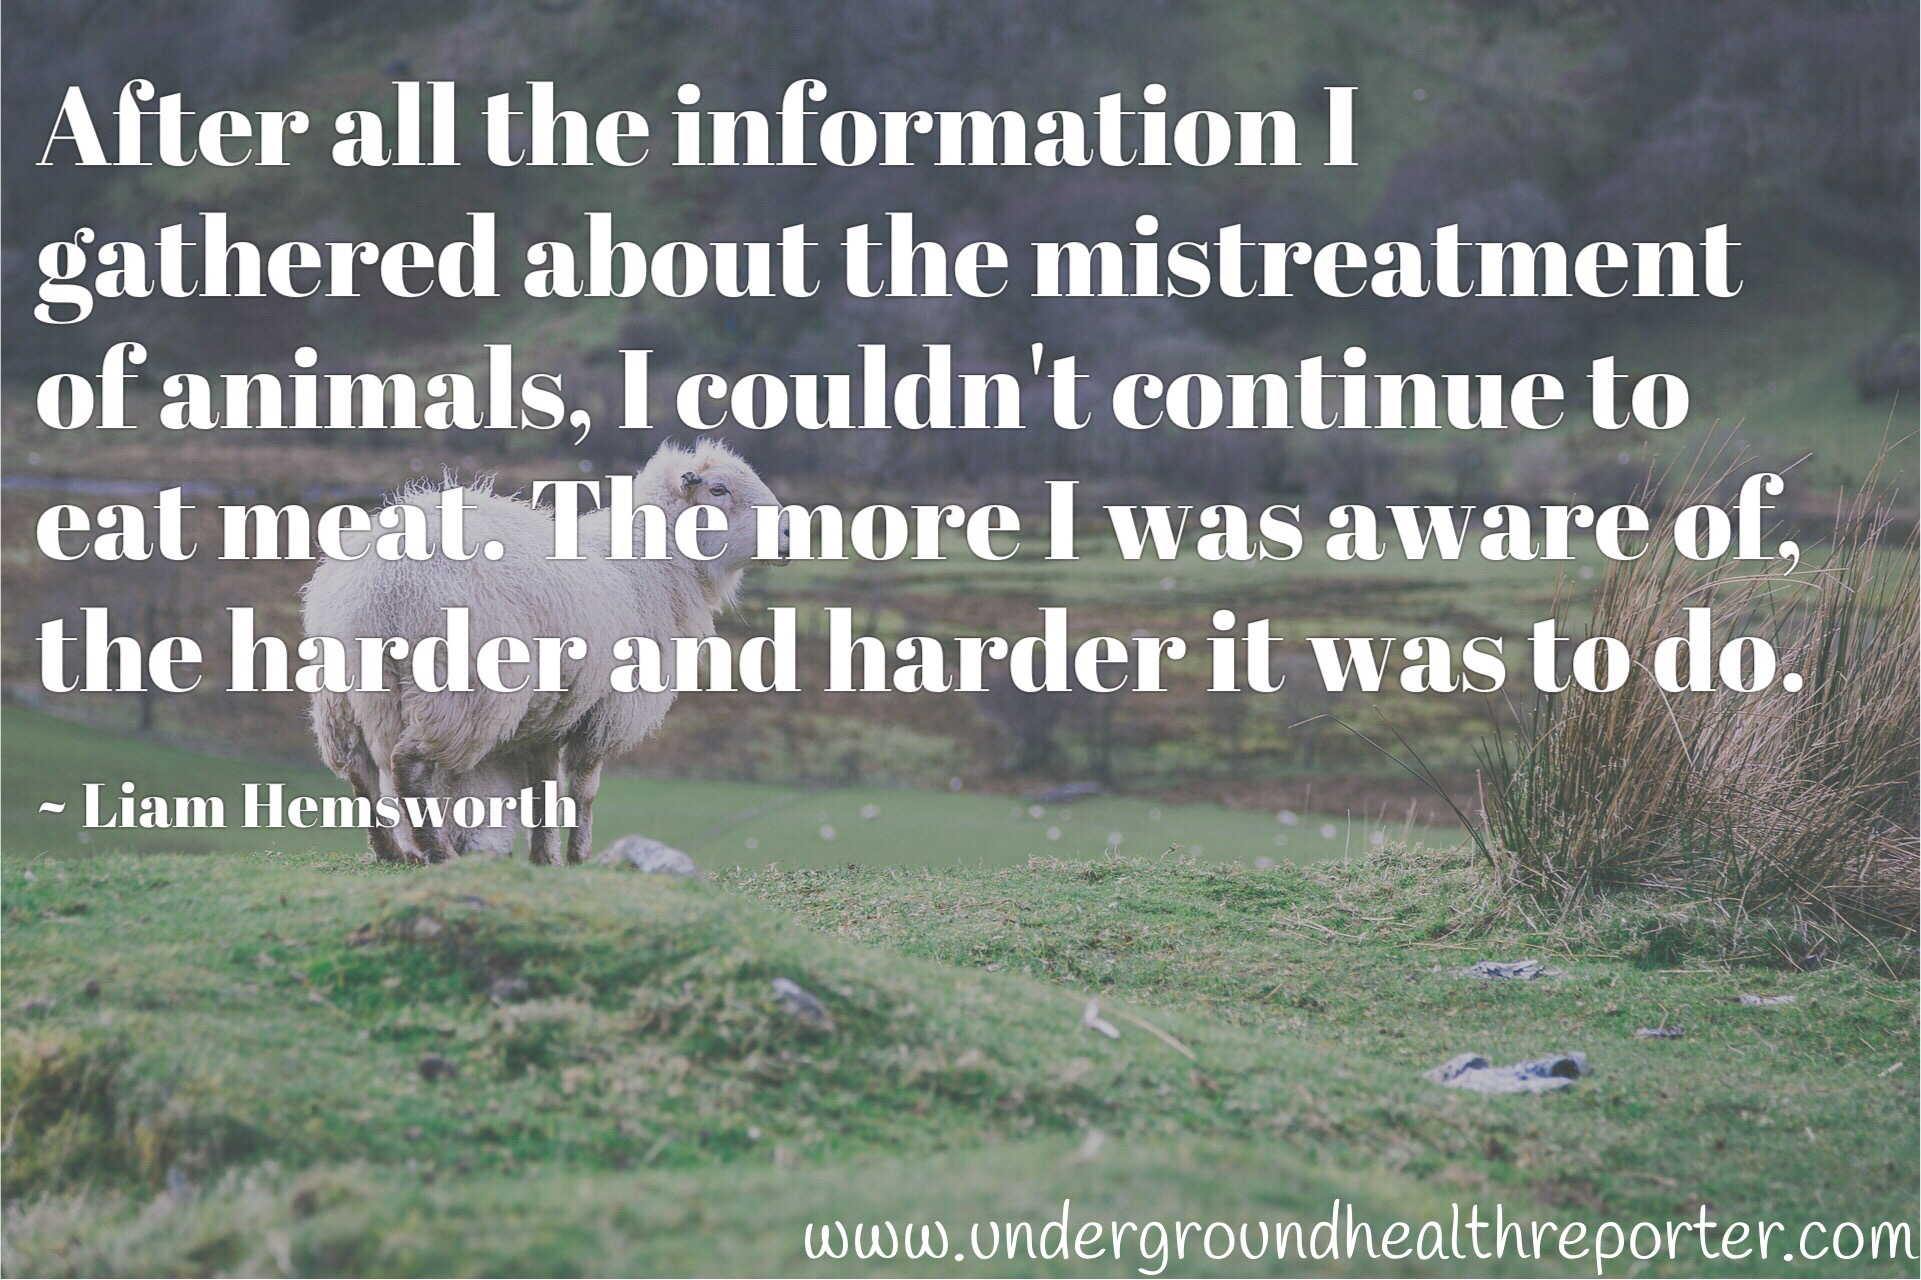 Liam Hemsworth quote about cruelty to animals